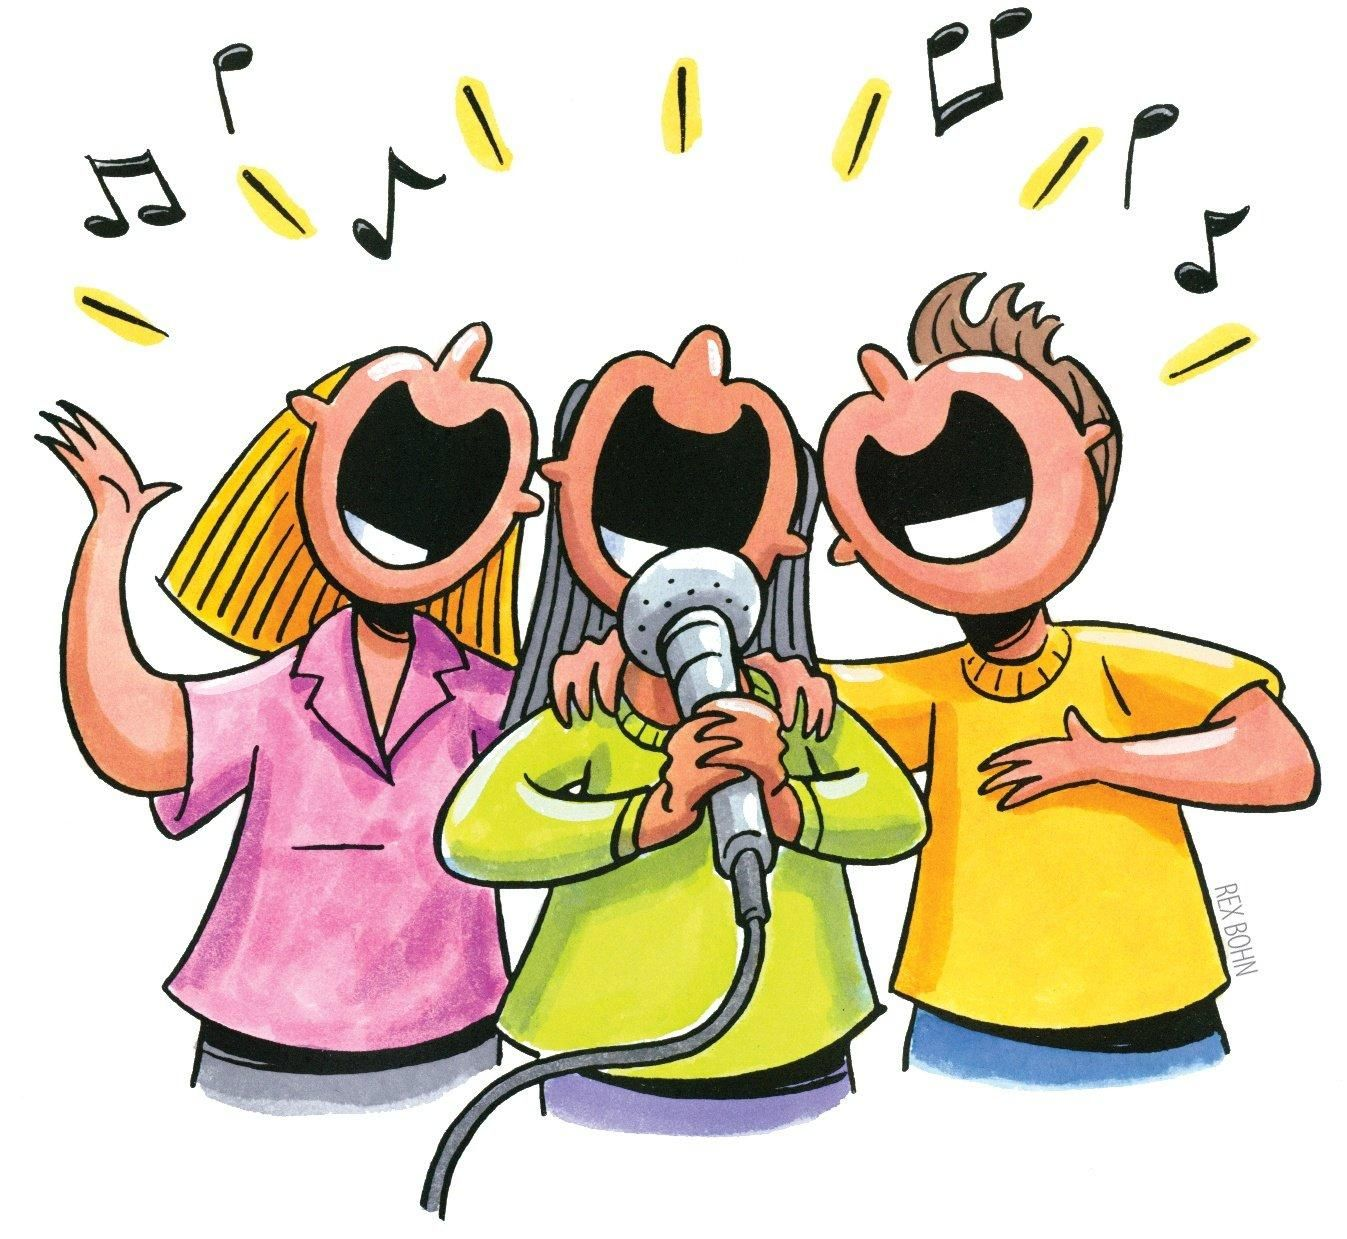 karaokesingerscartoon